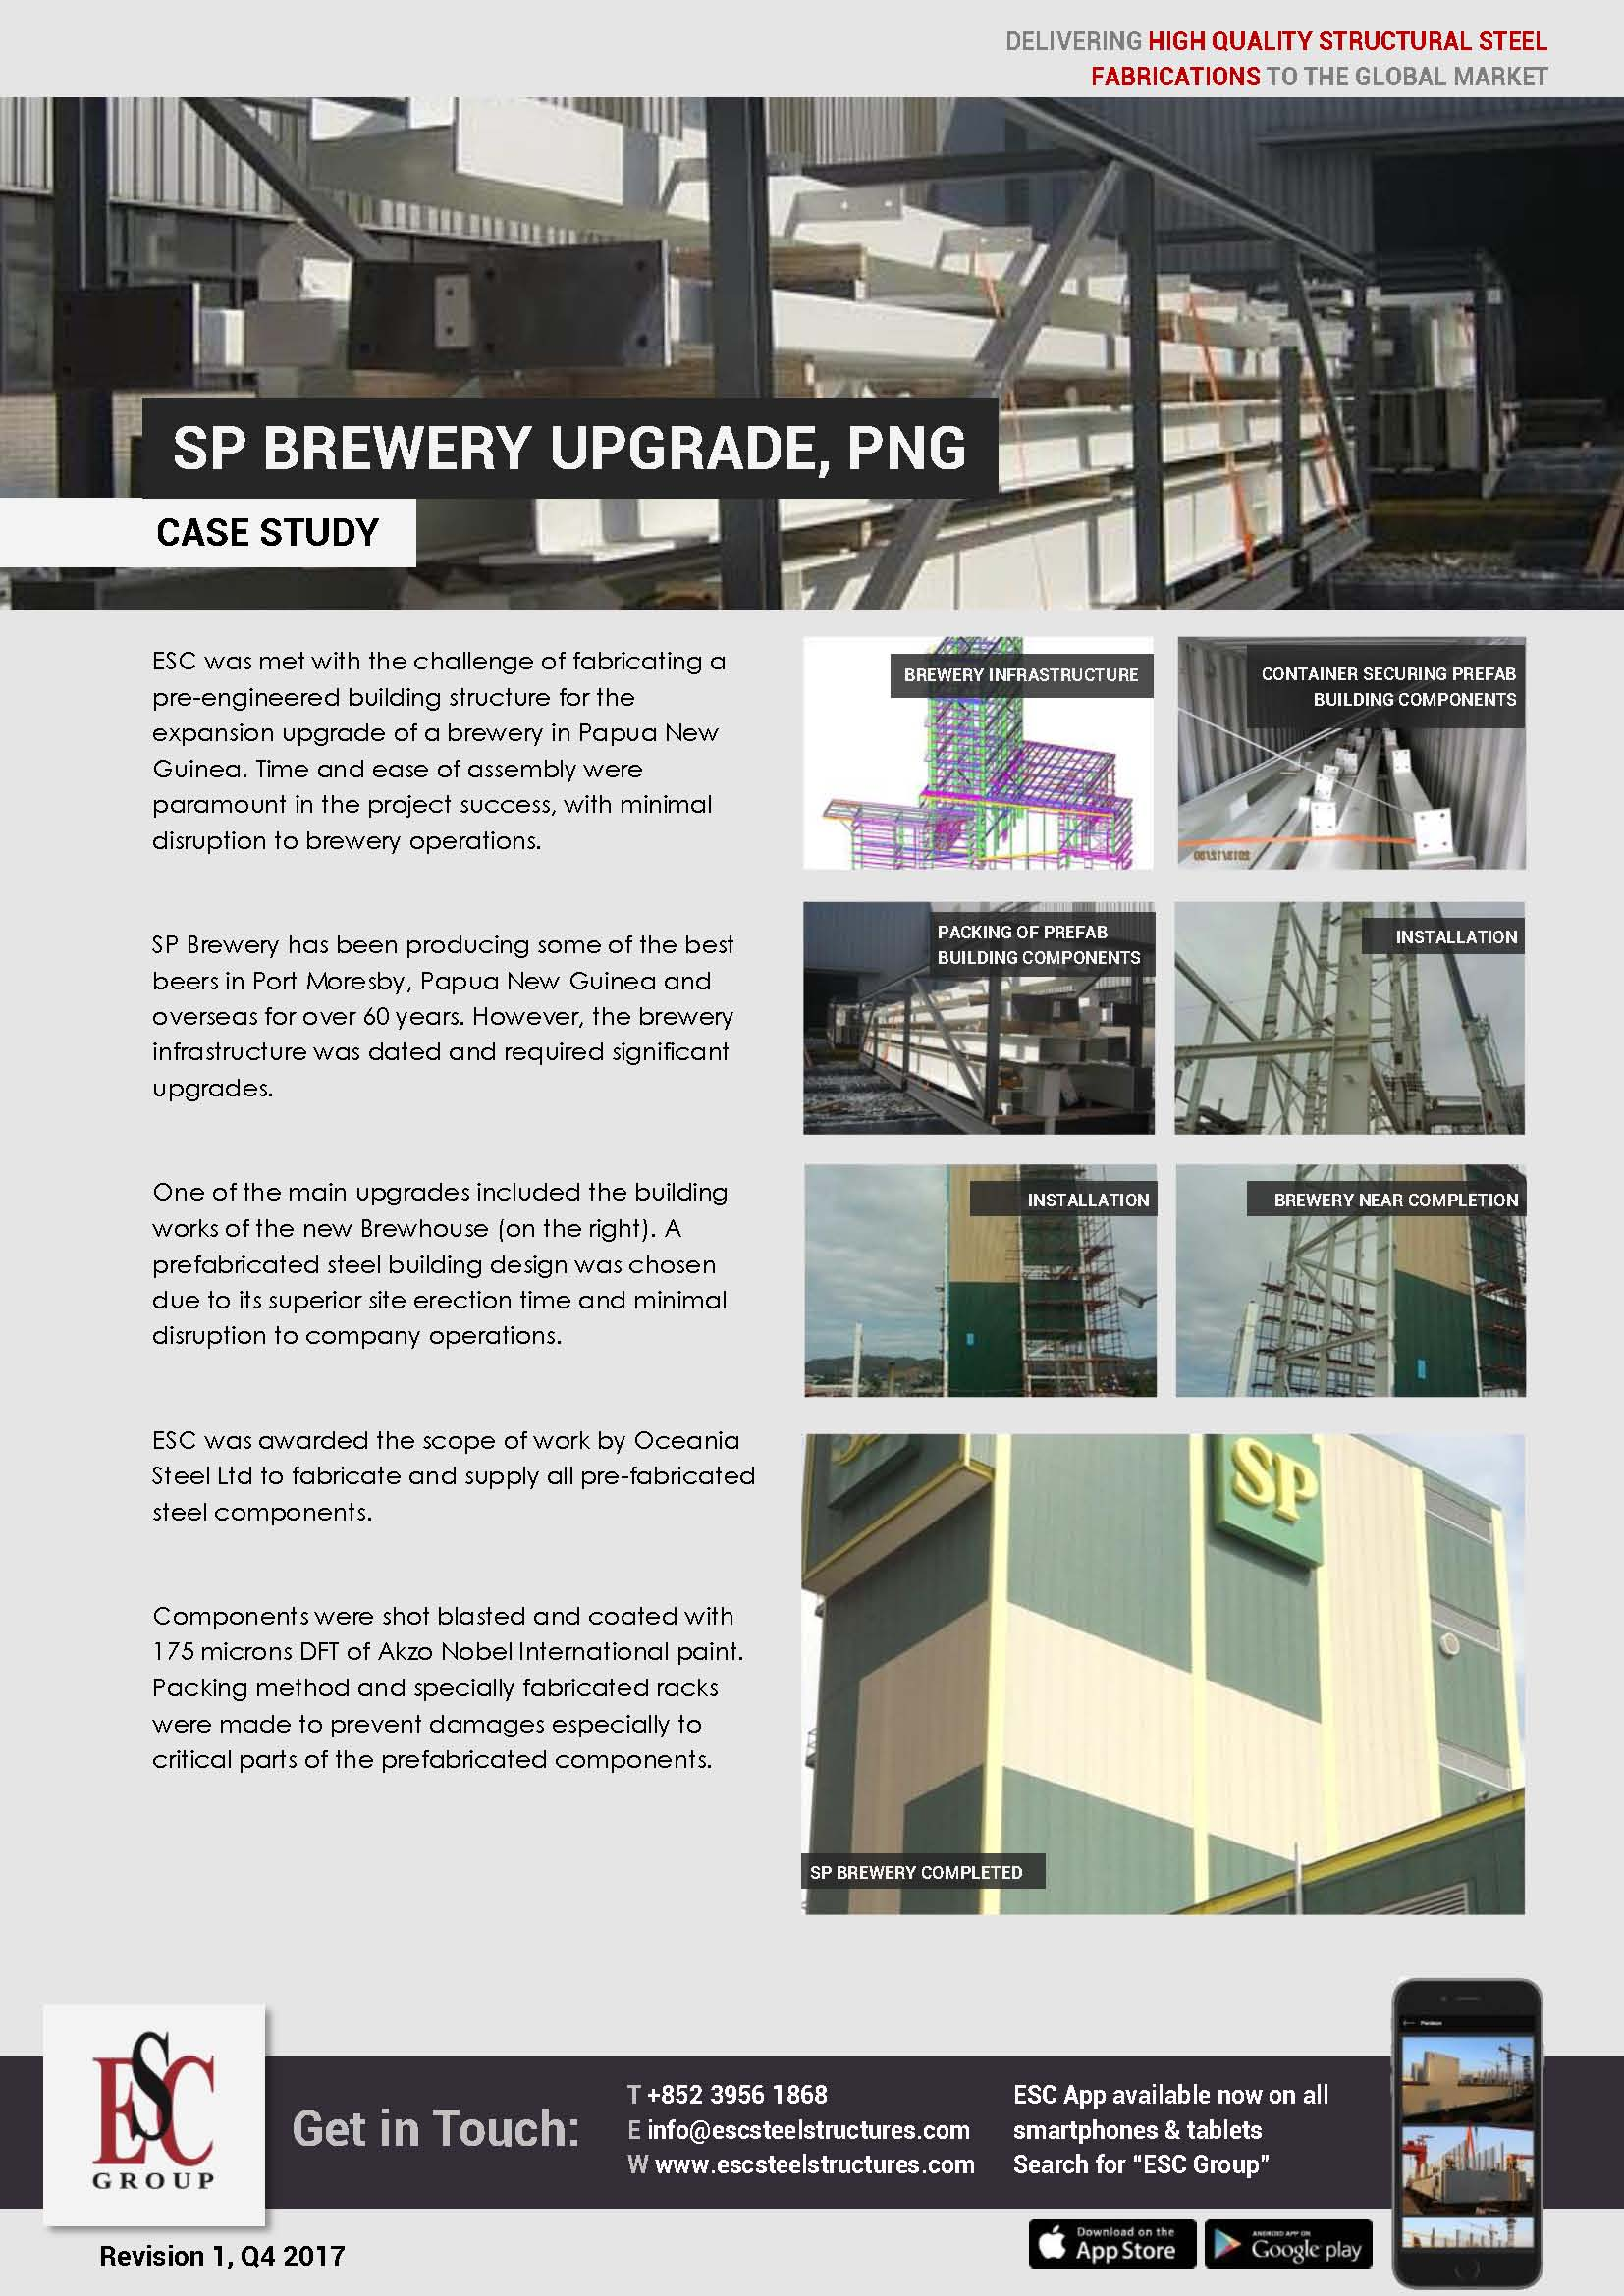 SP Brewery Upgrade, PNG